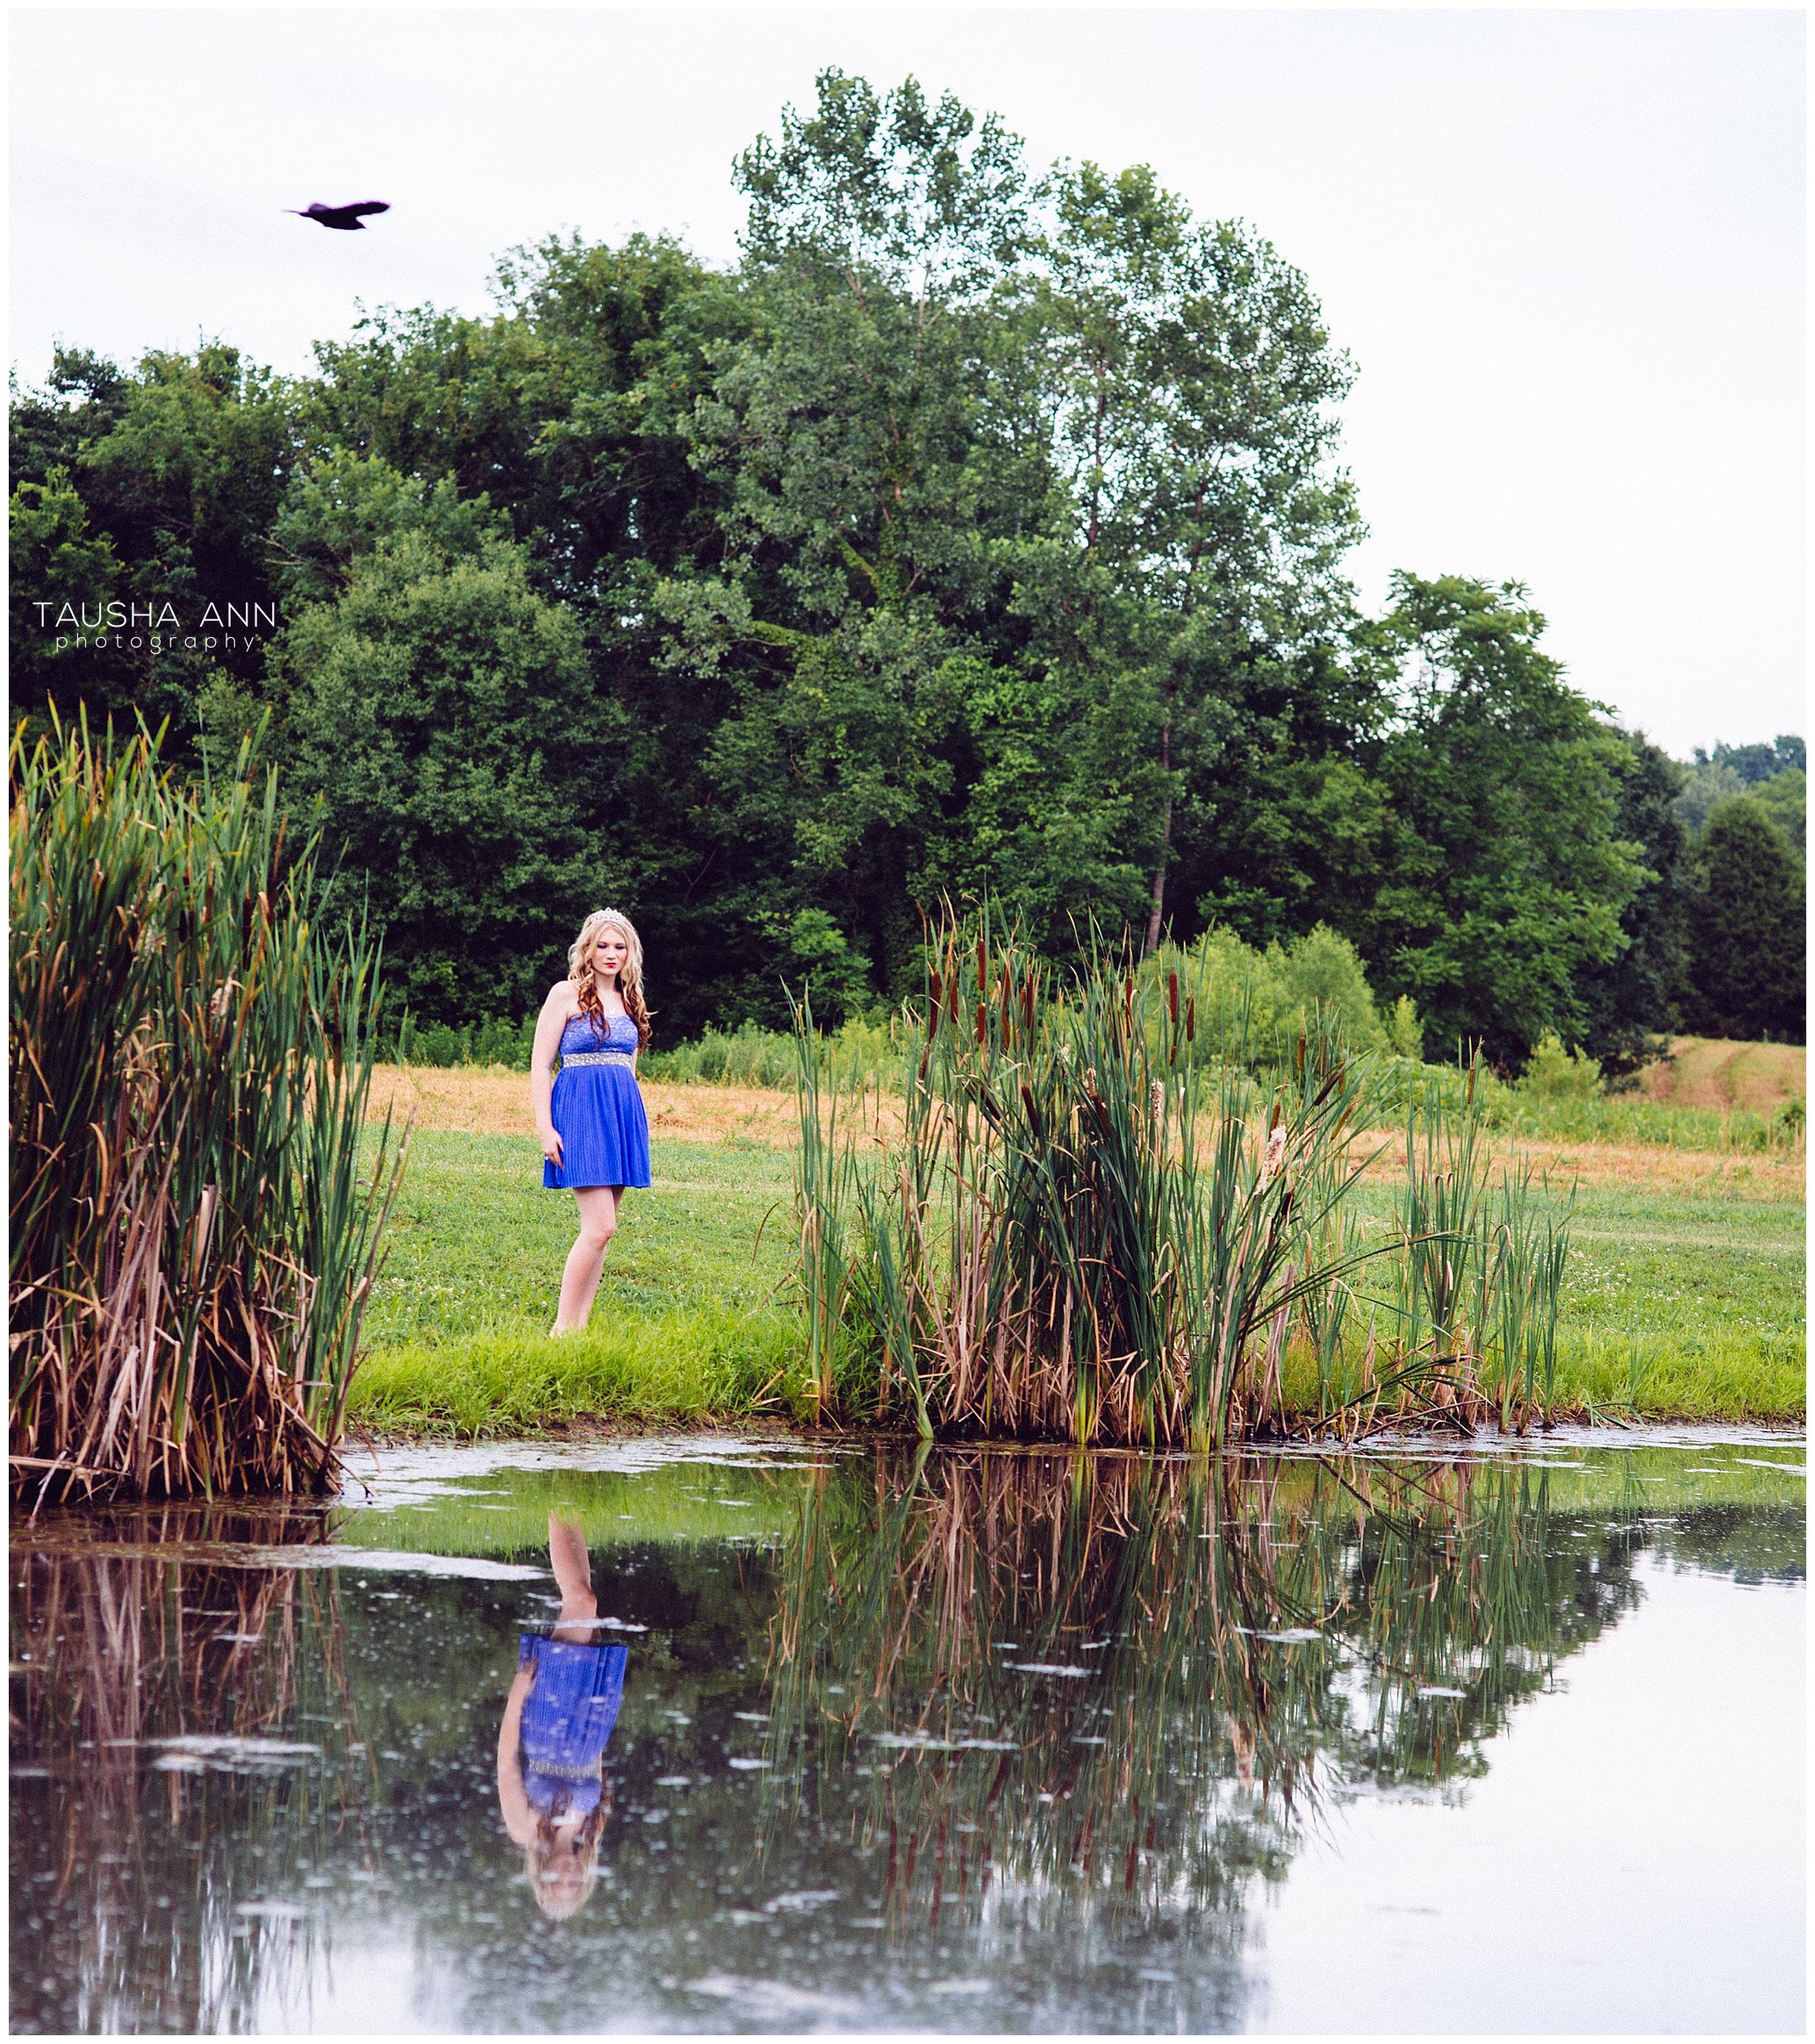 Sammie's_Sweet_16_Duck_Pond_Farm_Mt_Juliet_Tausha_Ann_Photography_Model_Nashville_Franklin_Spinning_Blue_Dress_Tiara_Reflection_Bird